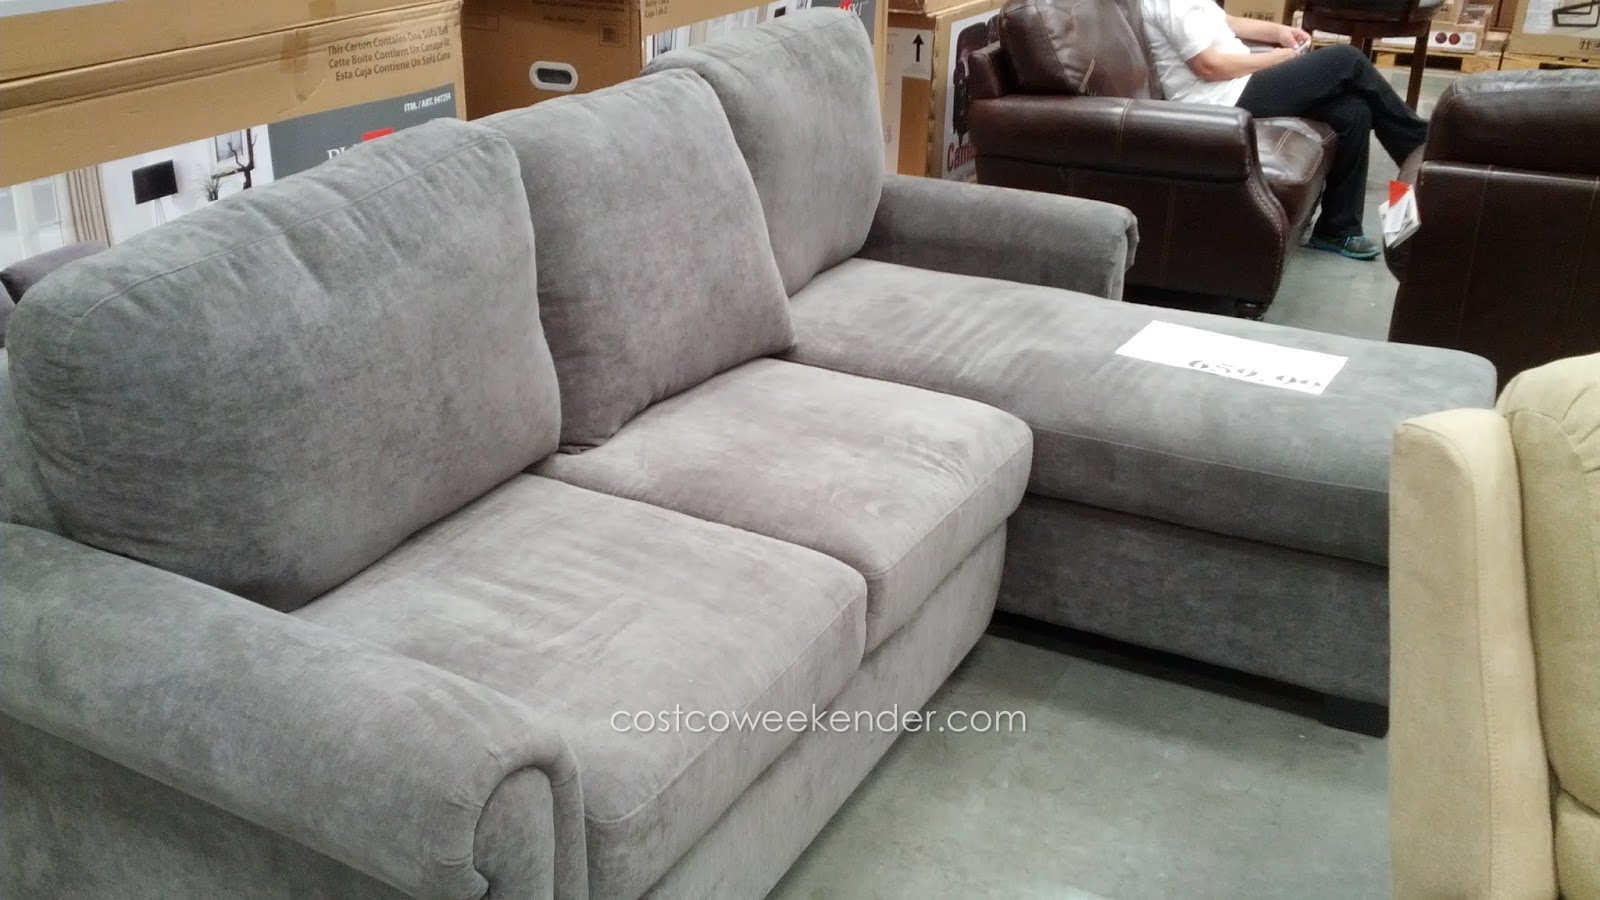 - Pulaski Newton Convertible Chaise Sofa Costco Weekender